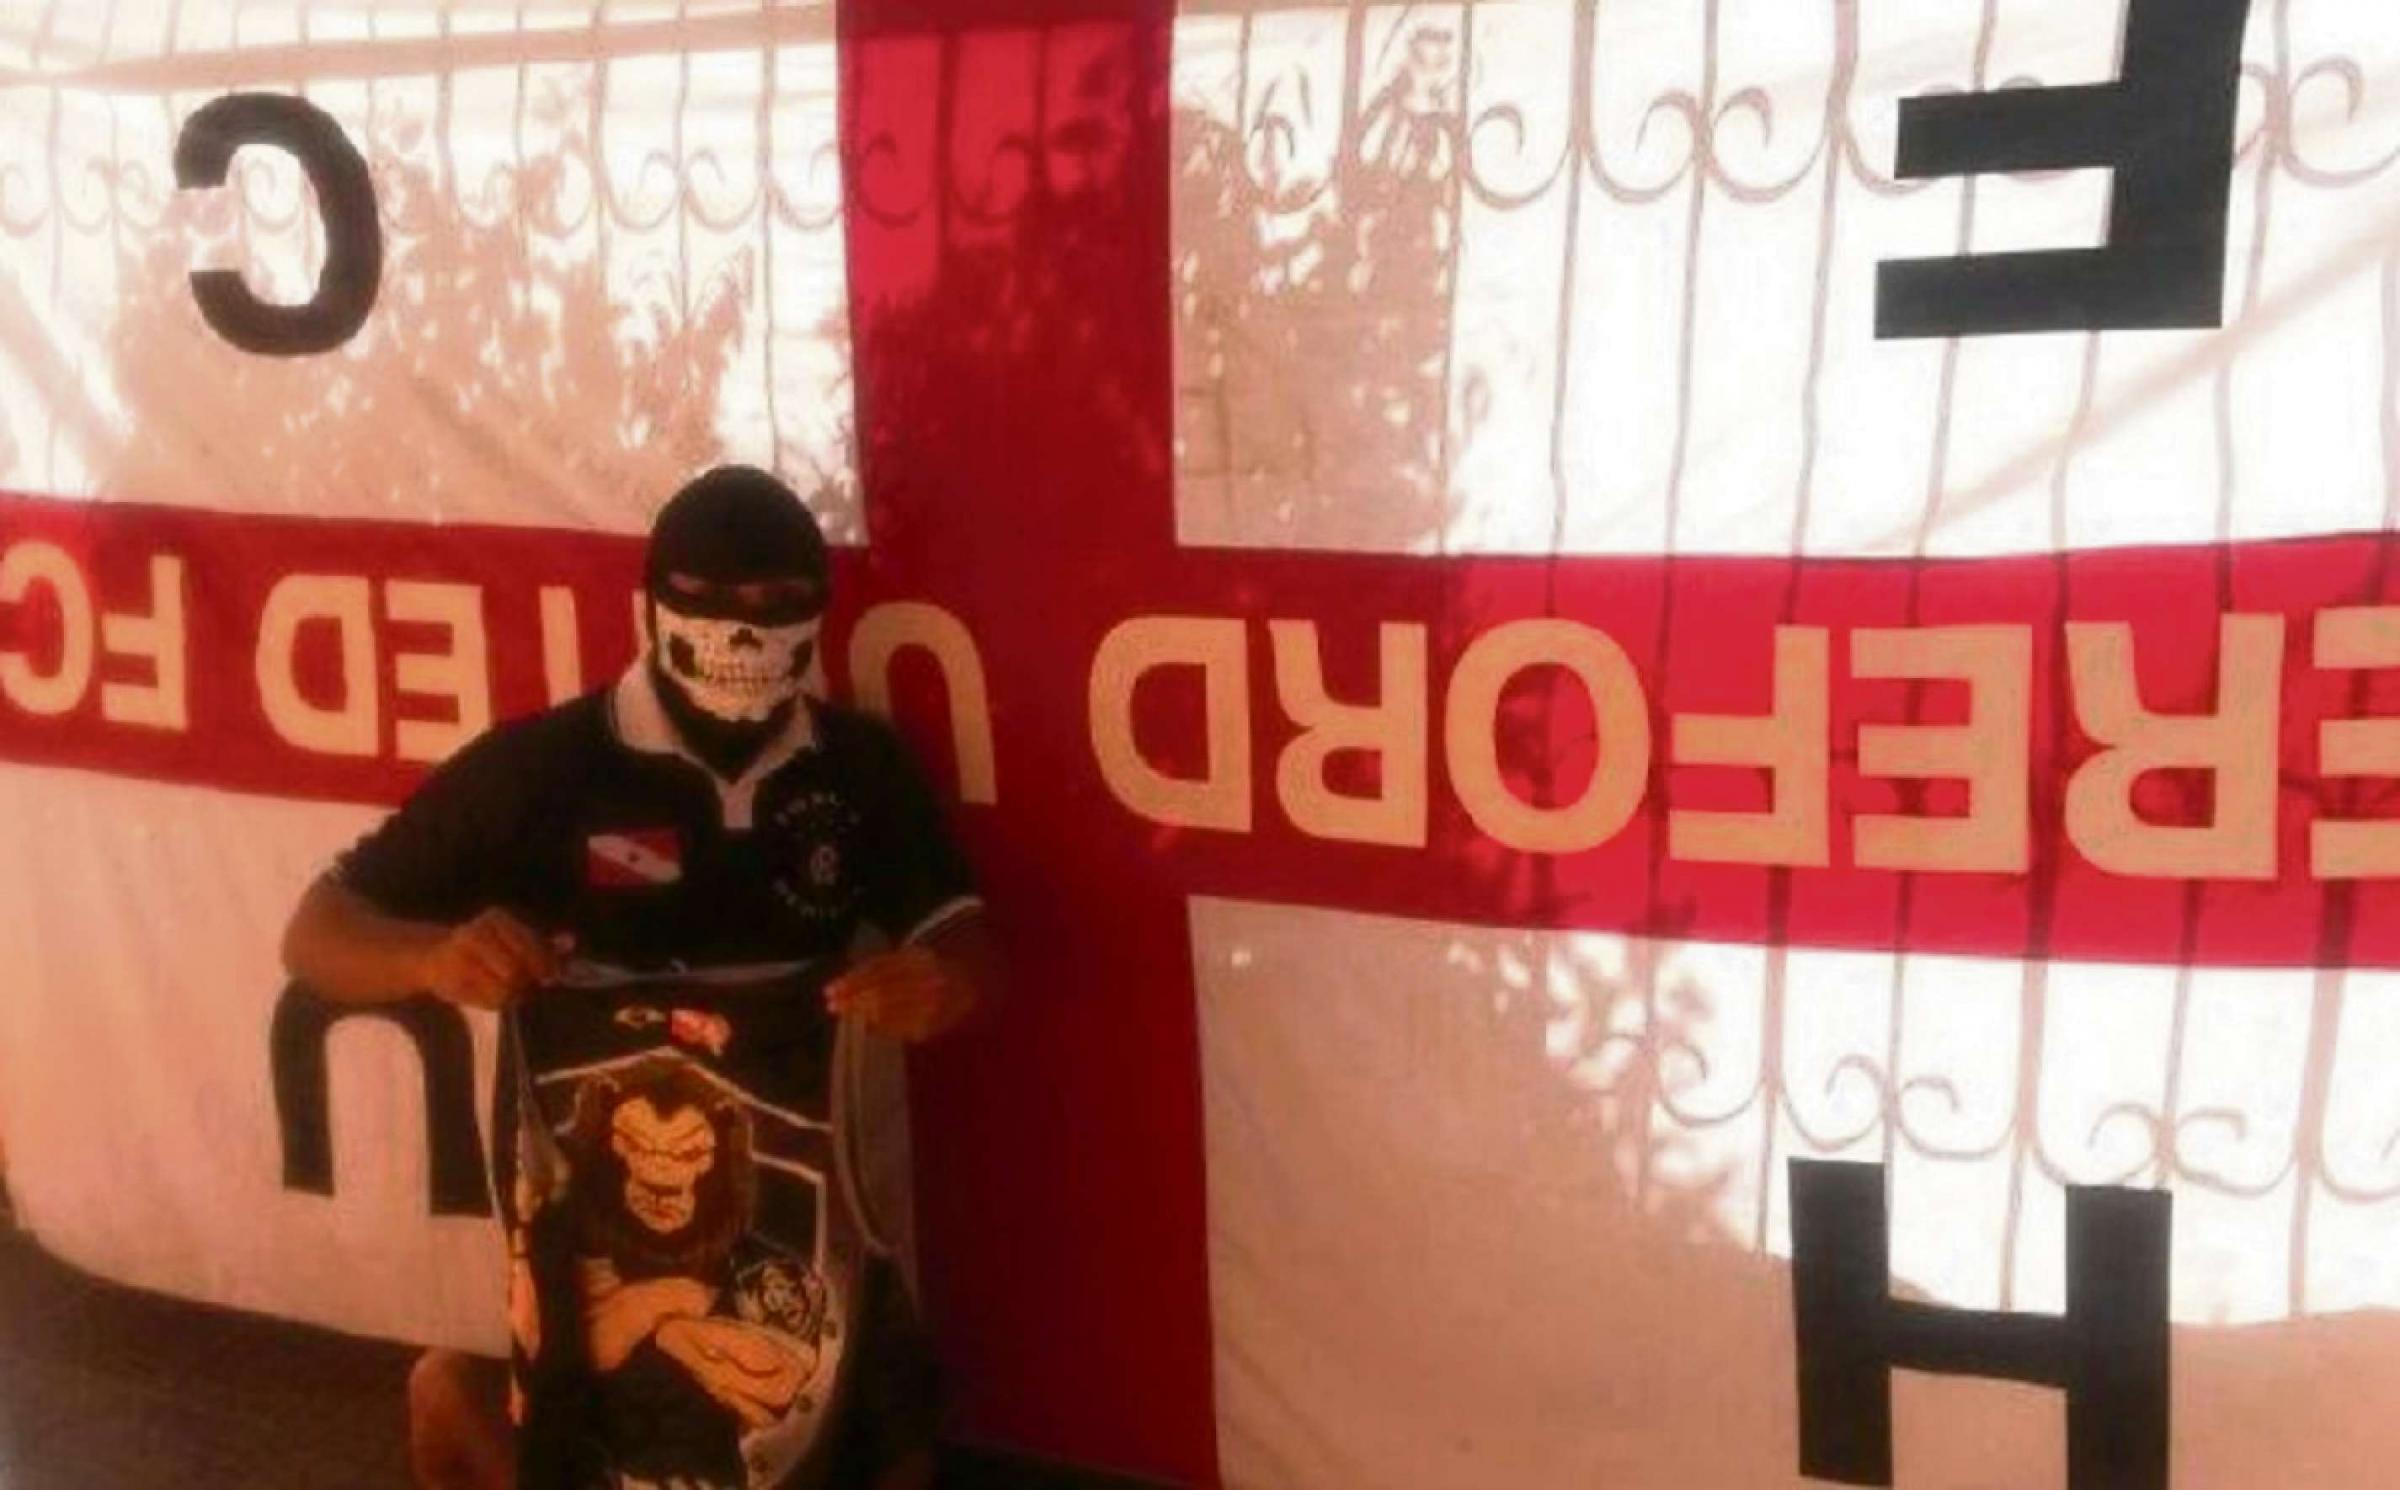 A Brazilian fan next to the Hereford United flag that was allegedly stolen.